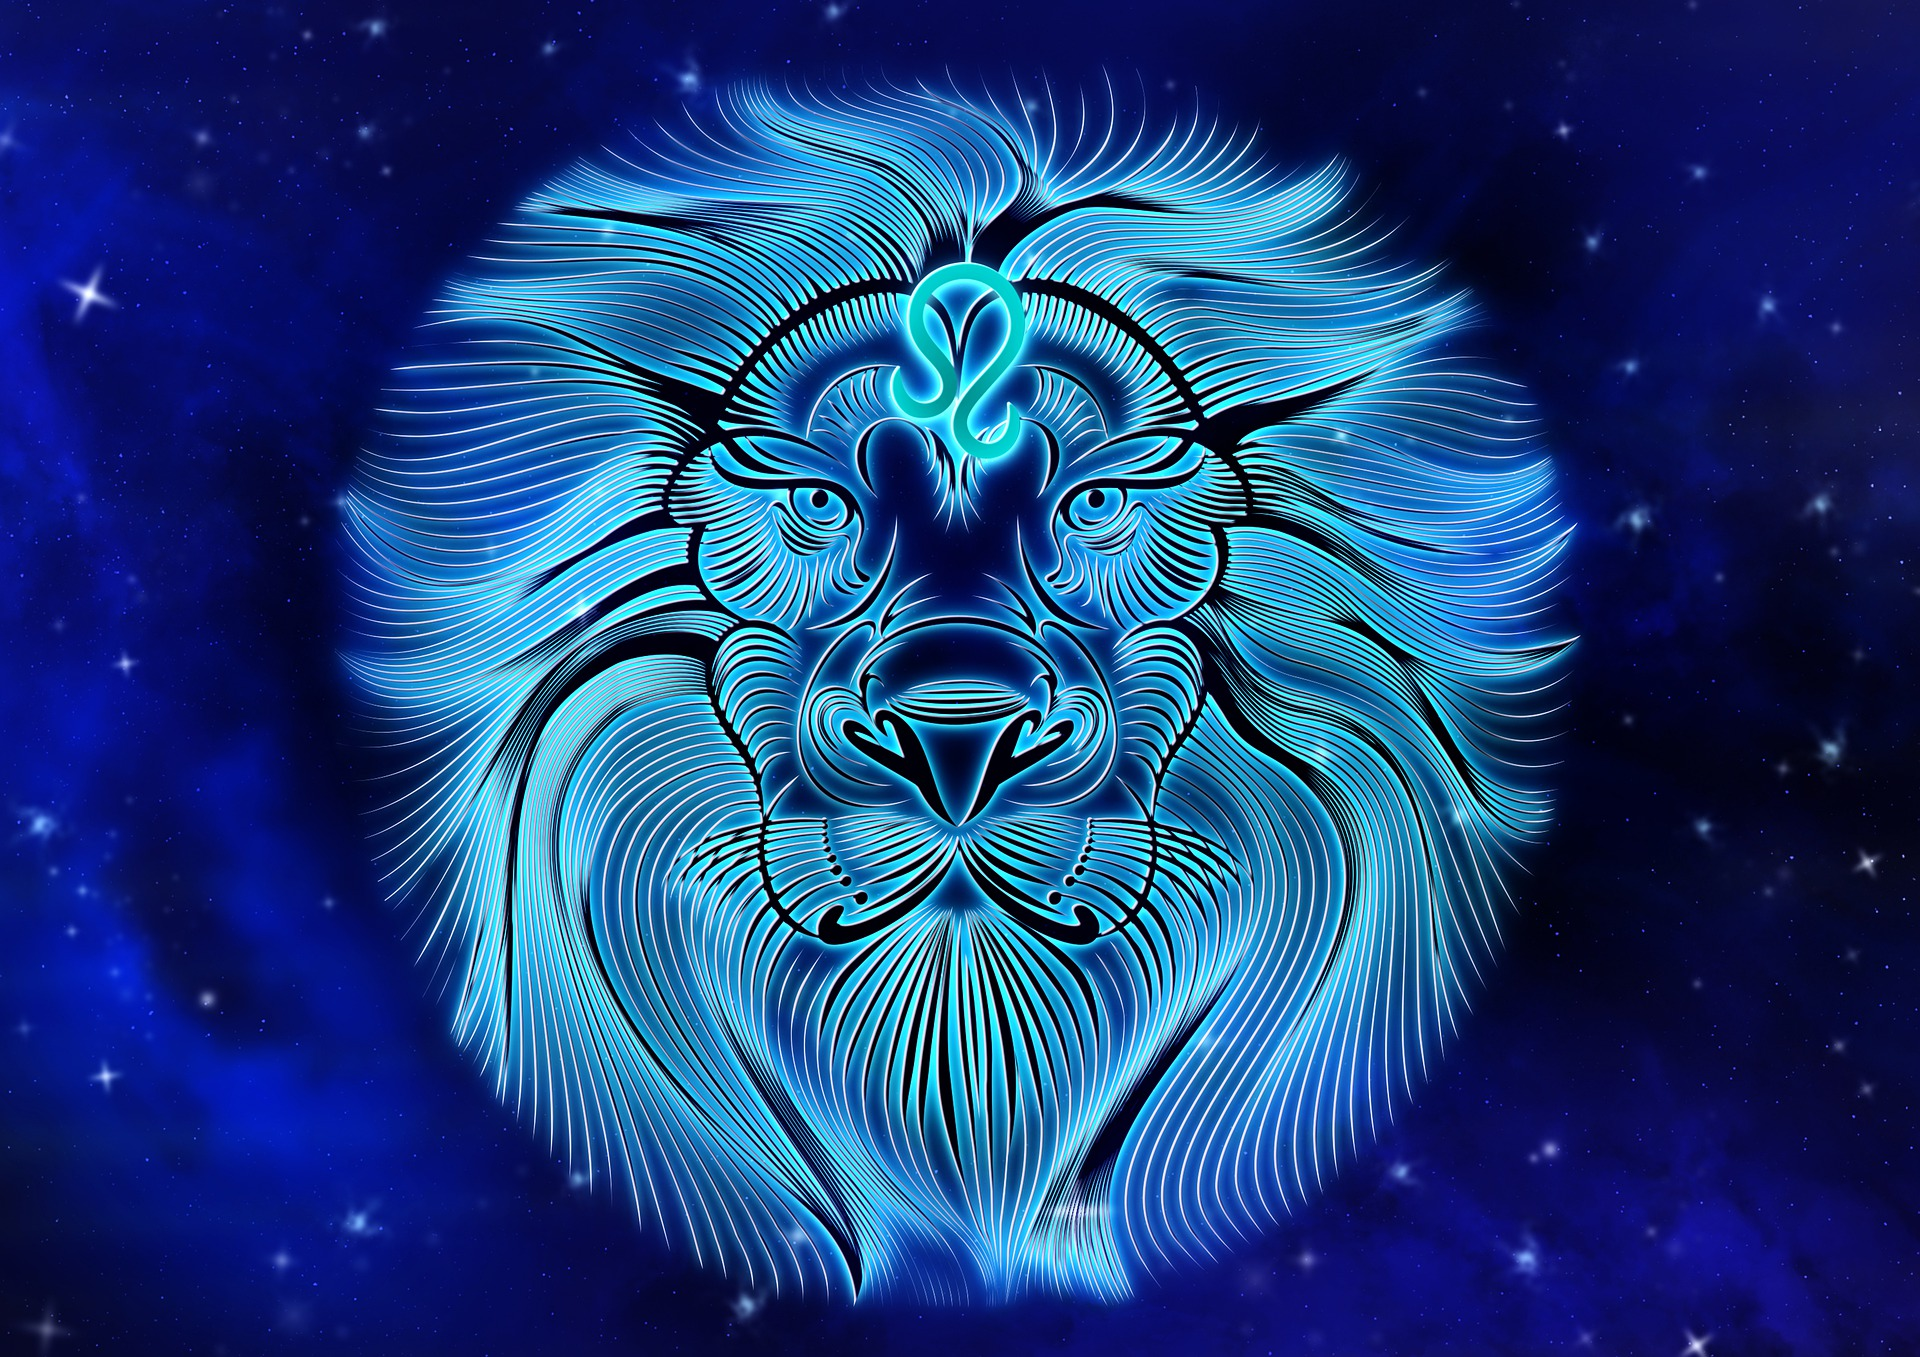 Leo the Lion – Time to roar!